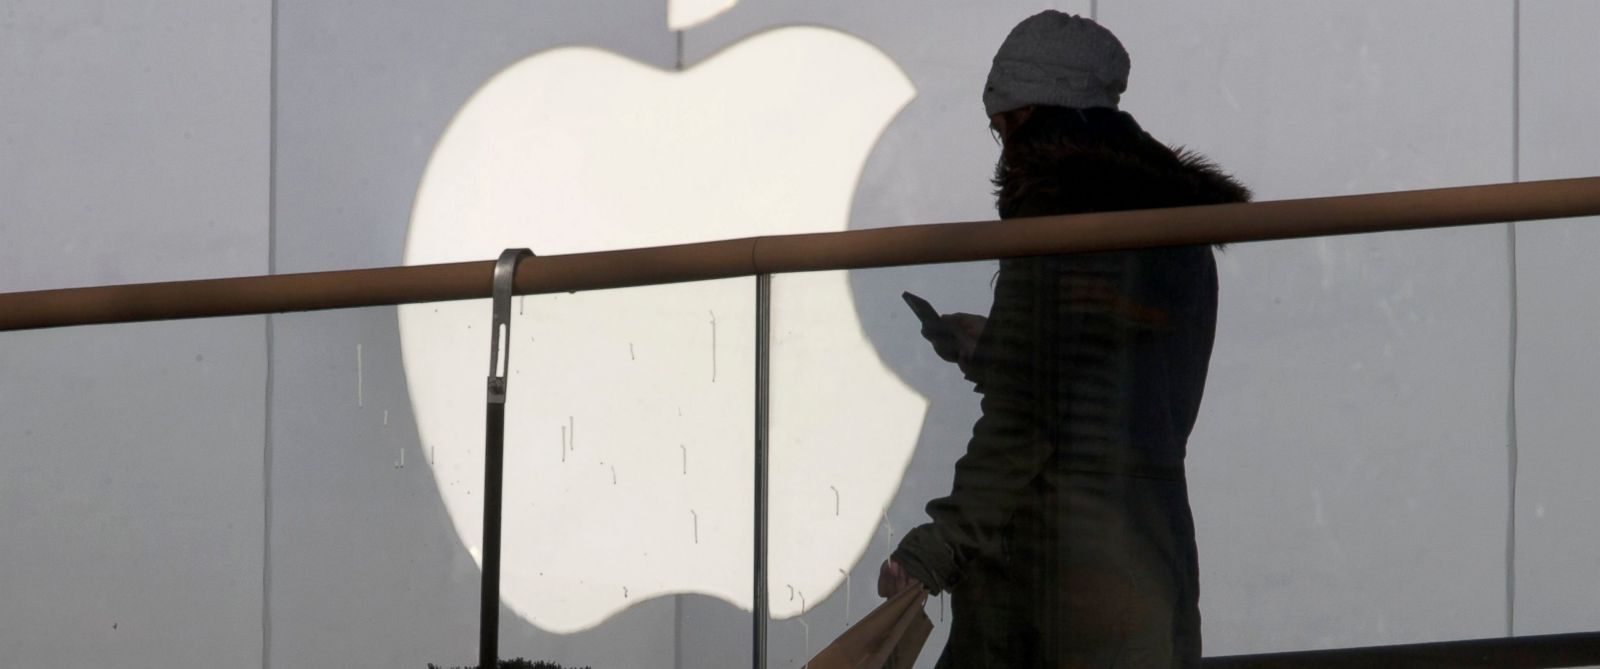 PHOTO: A woman walks past Apples logo.